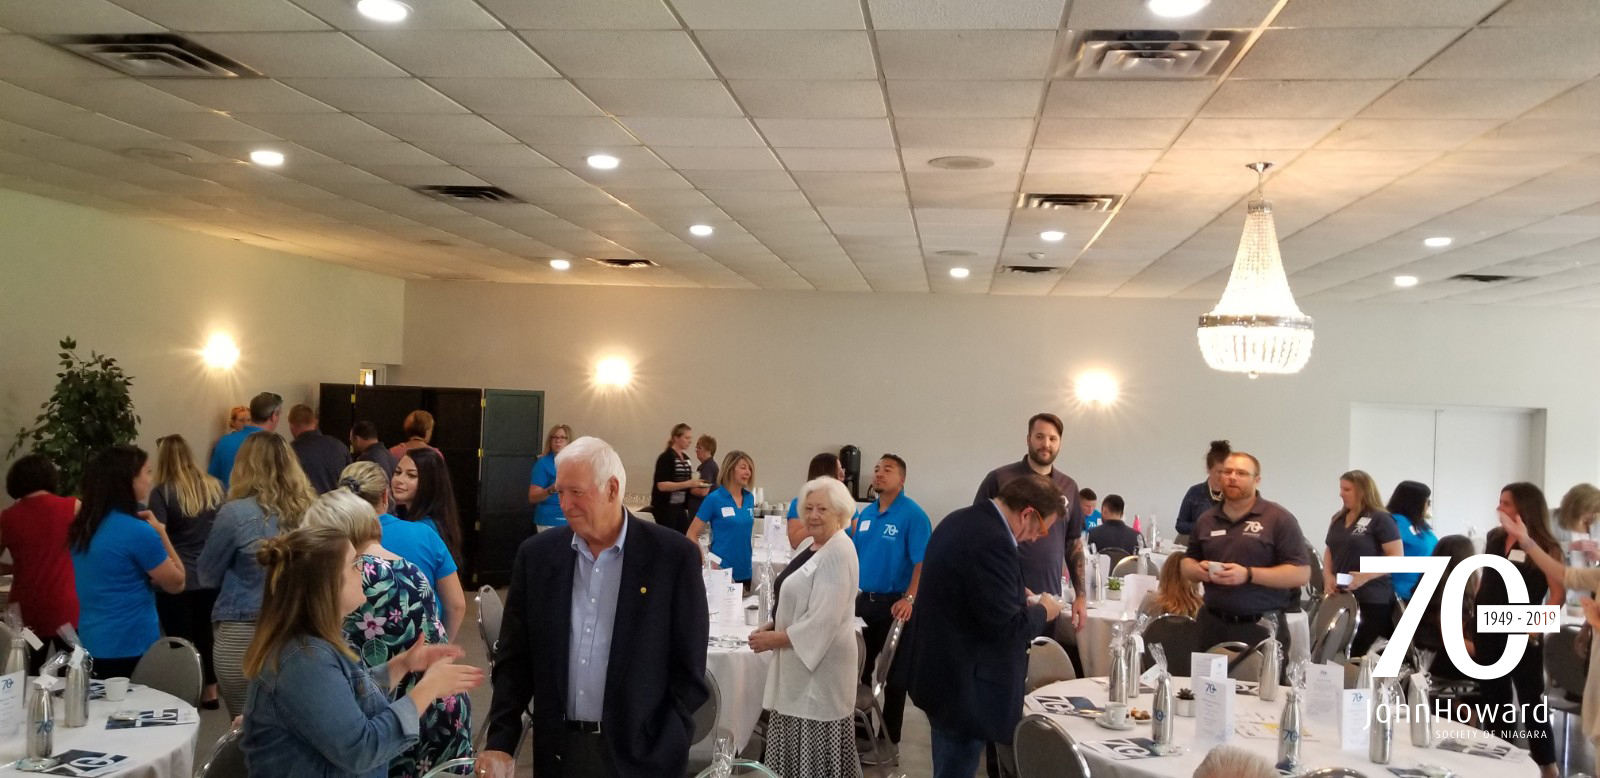 John Howard Society of Niagara AGM 2019